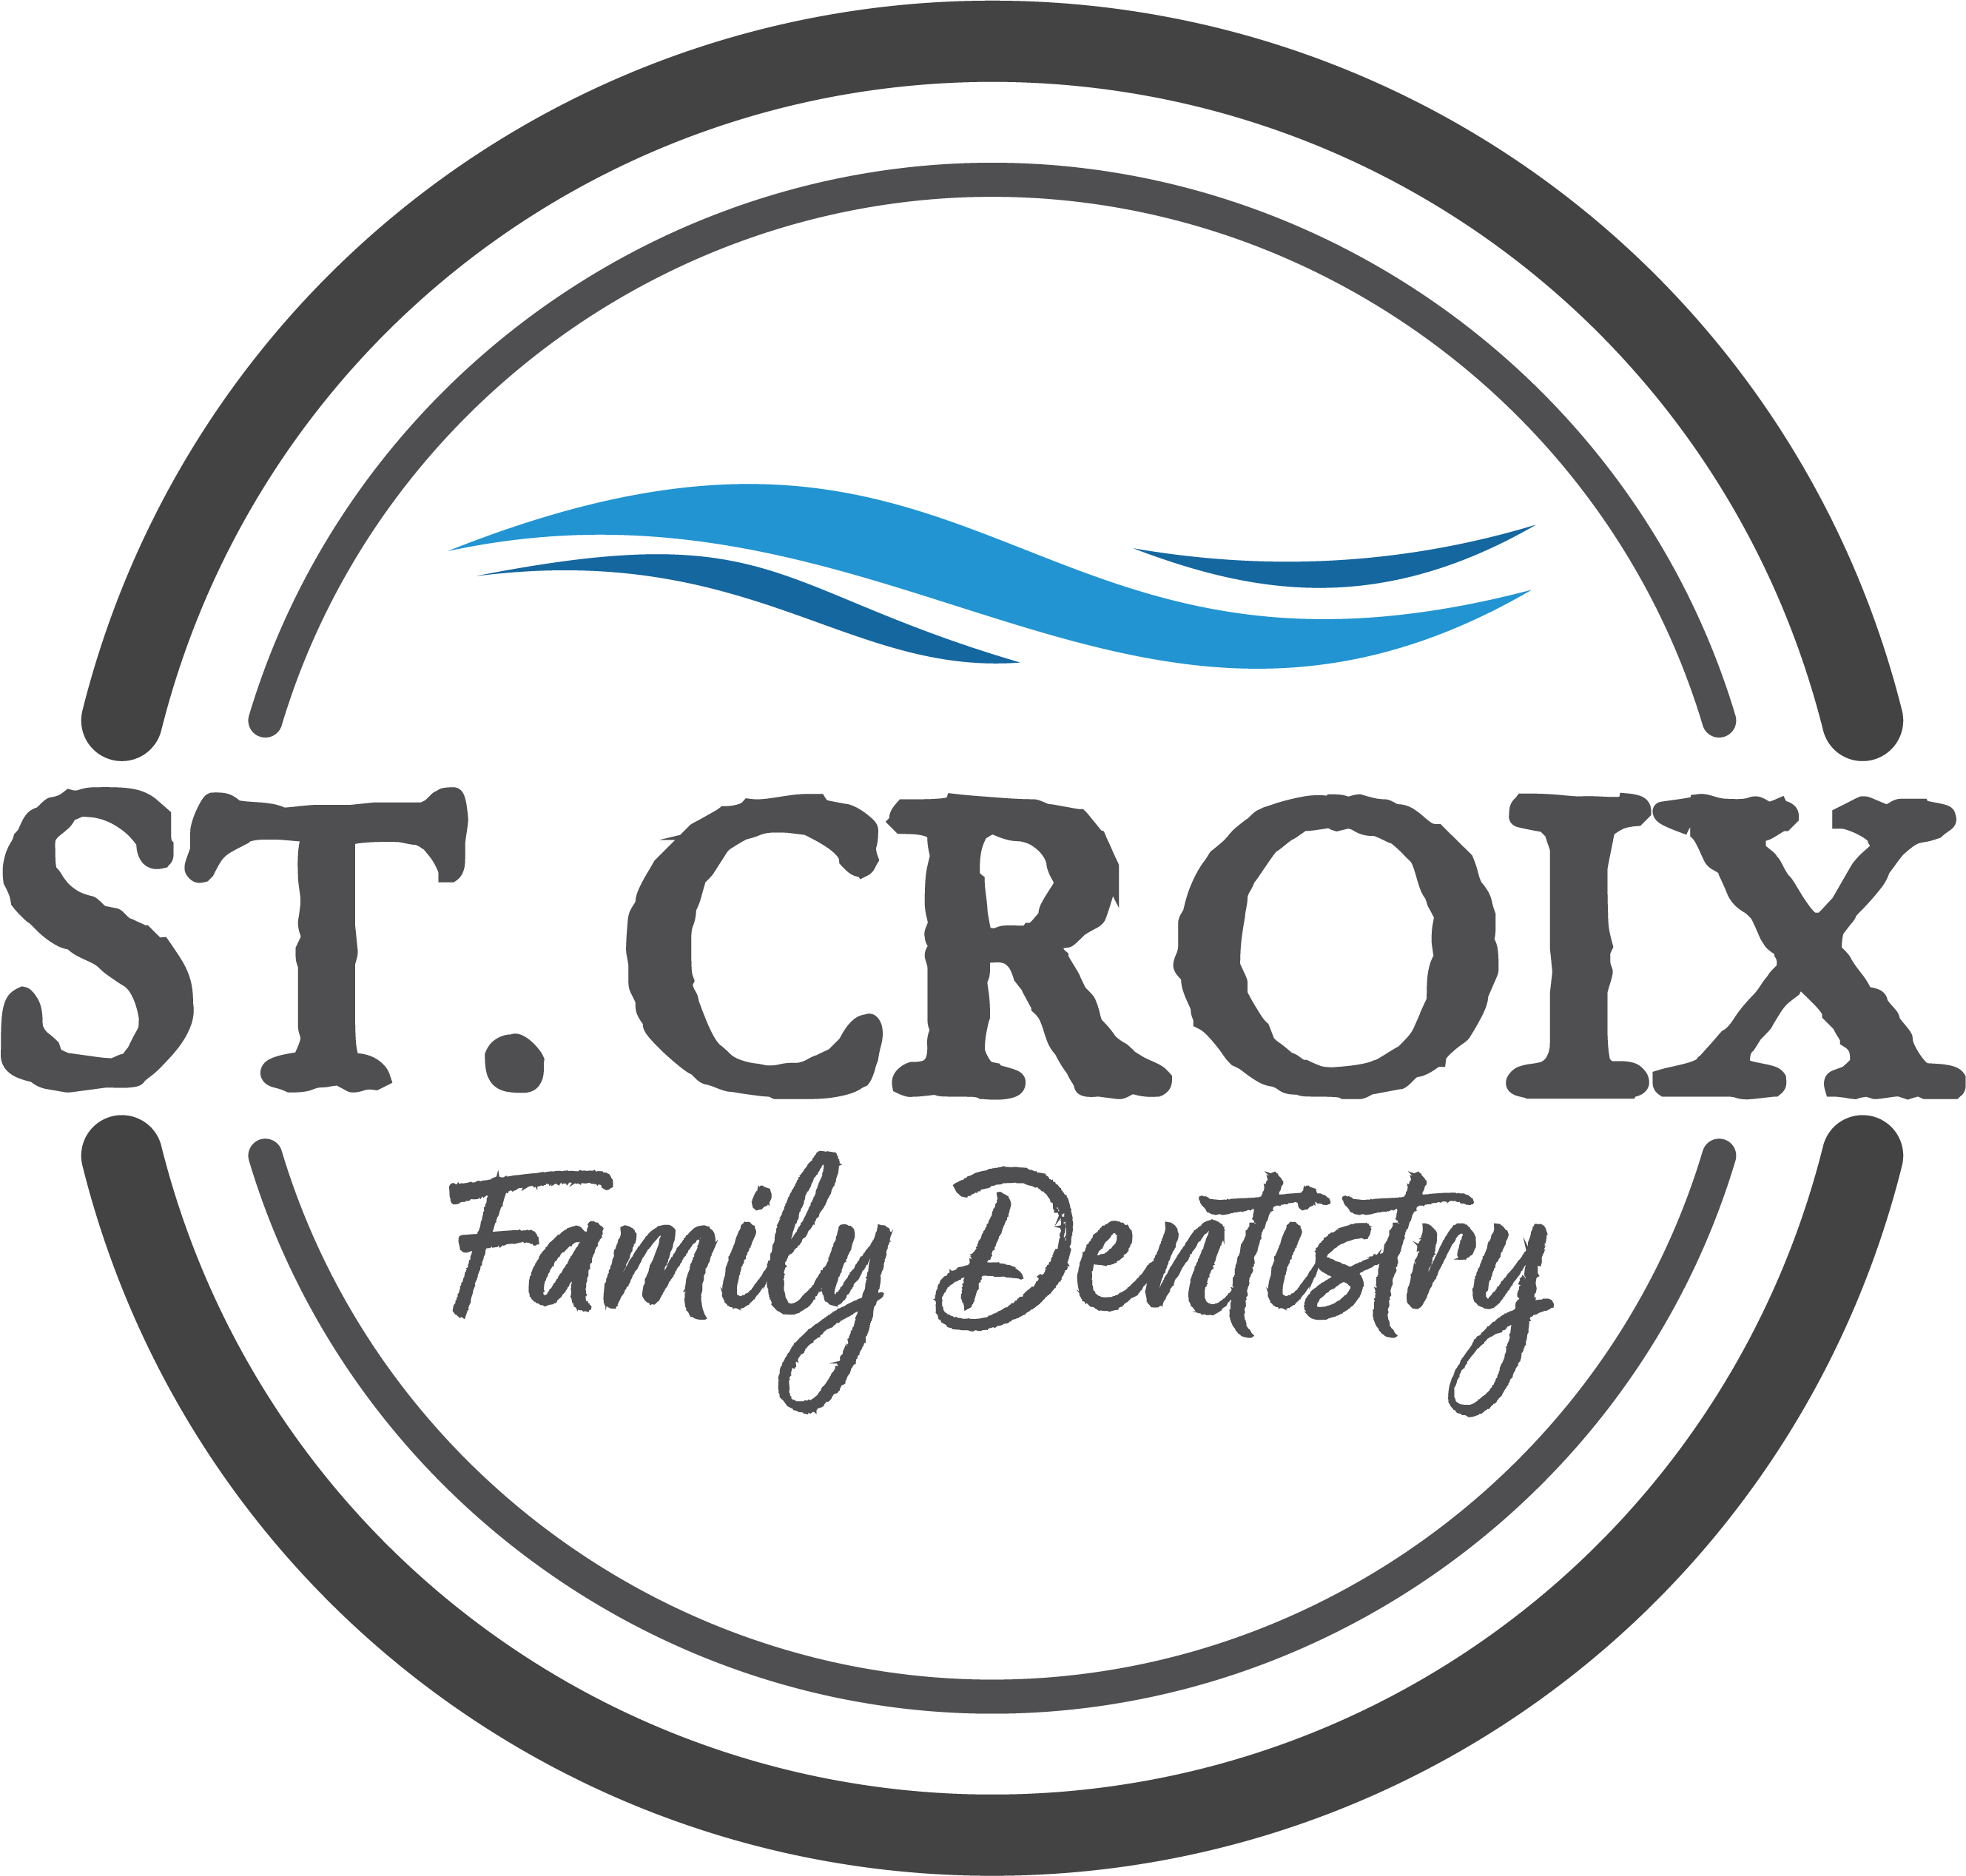 St. Croix Family Dentistry